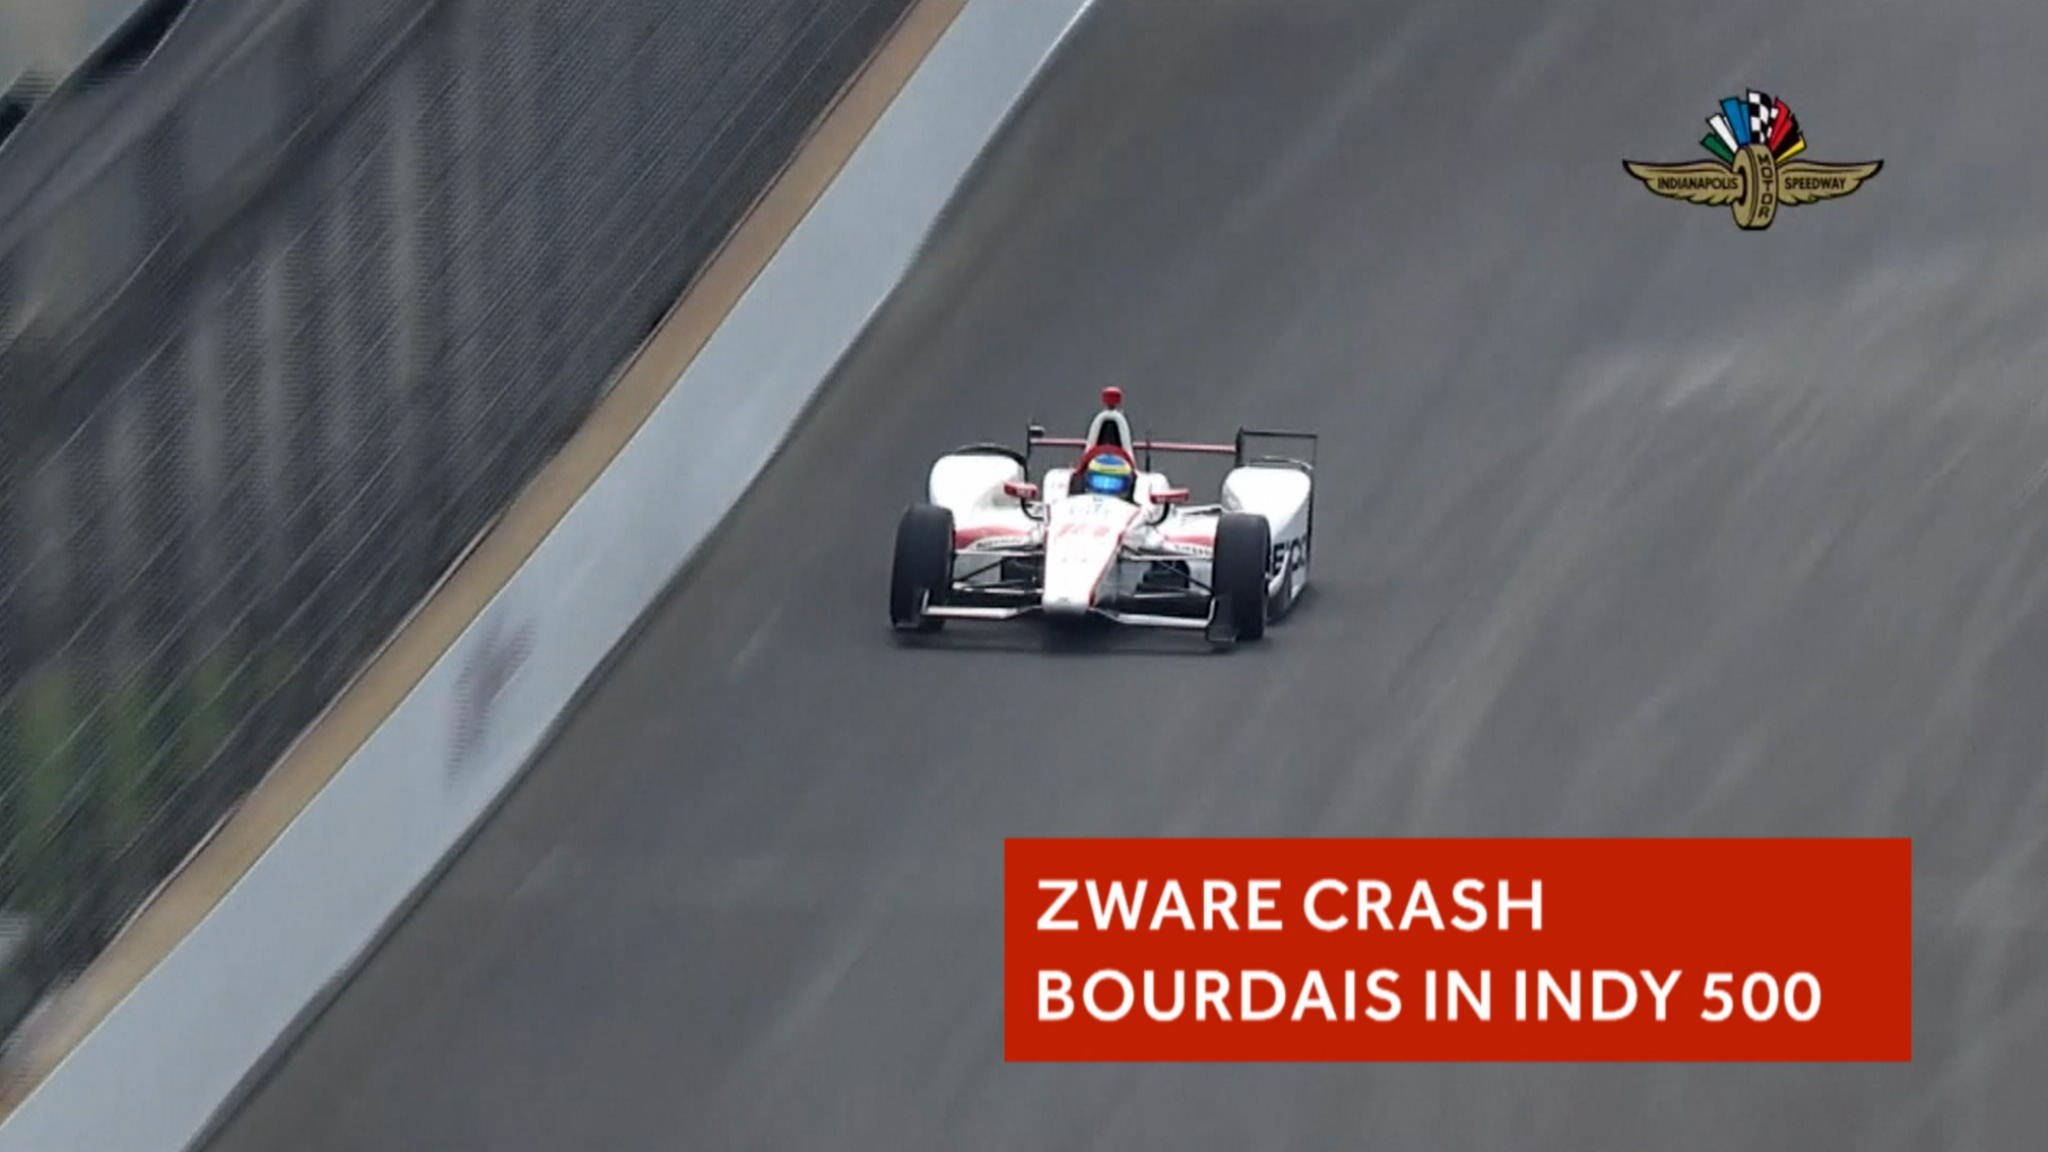 zware crash bourdais schrikt indy 500 op nos. Black Bedroom Furniture Sets. Home Design Ideas